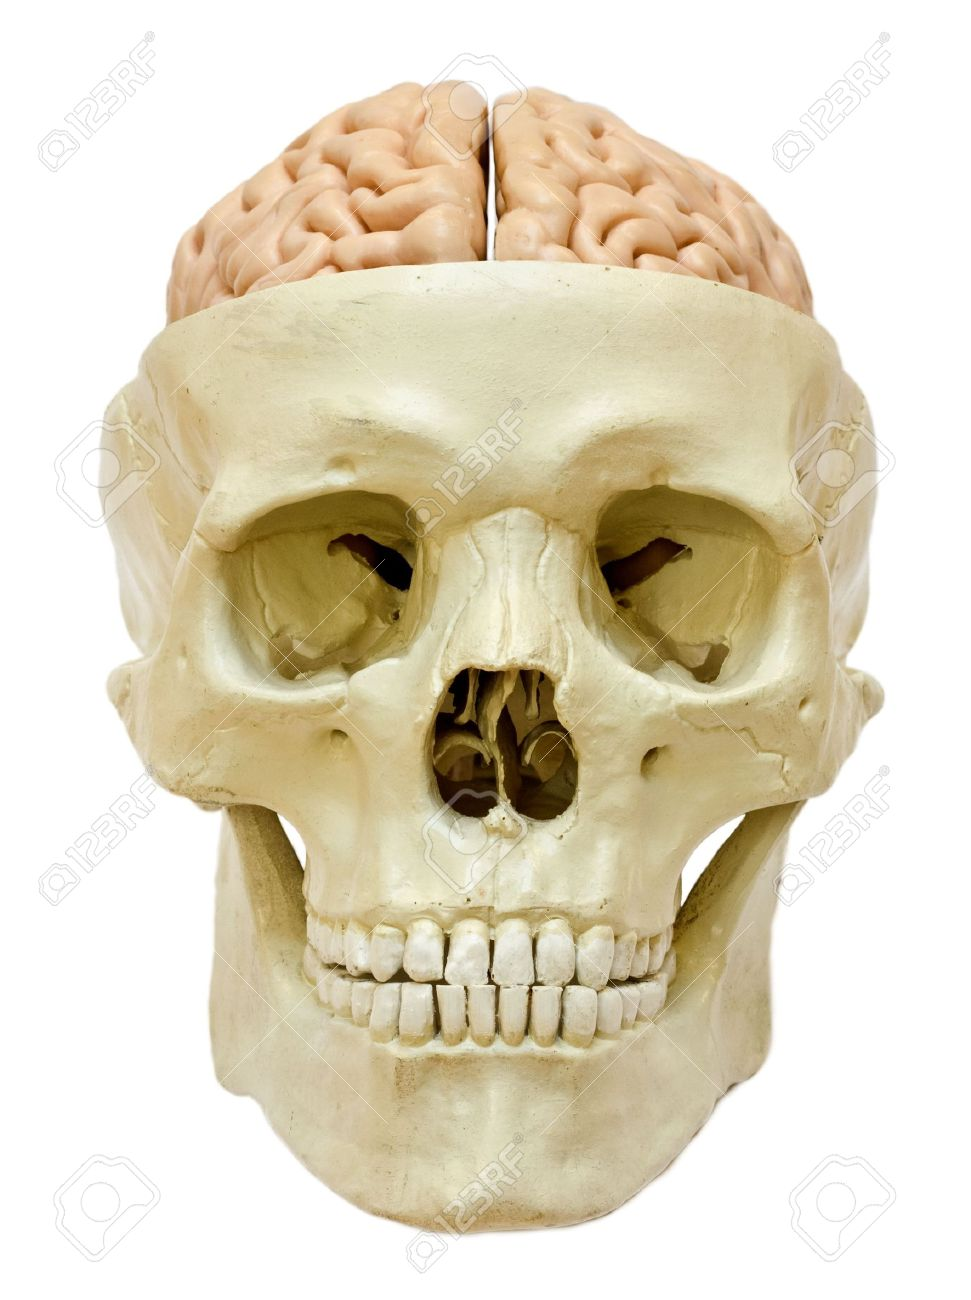 Model Of A Skull With Visible Brain Isolated On White Background Stock Photo